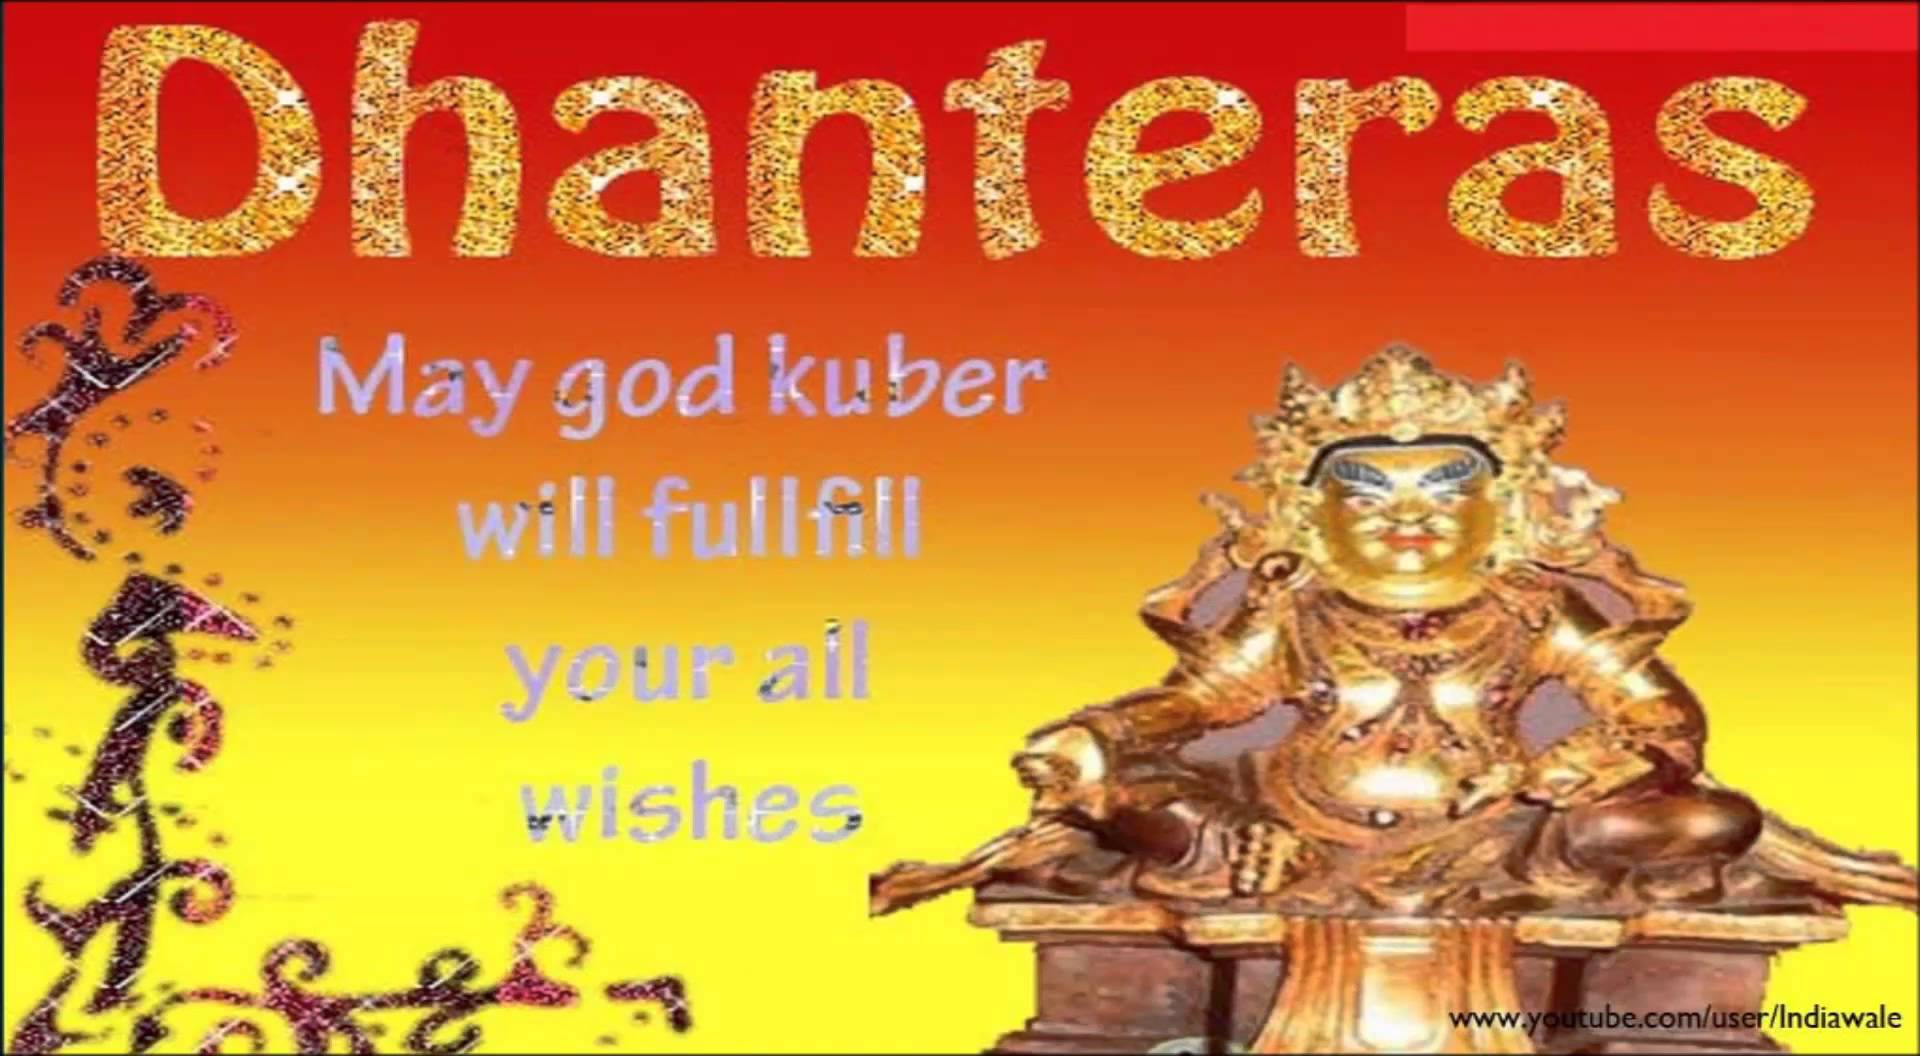 Dhanteras May God Kuber Will Fulfill Your All Wishes Happy Birthday May God Fulfill All Your Wishes